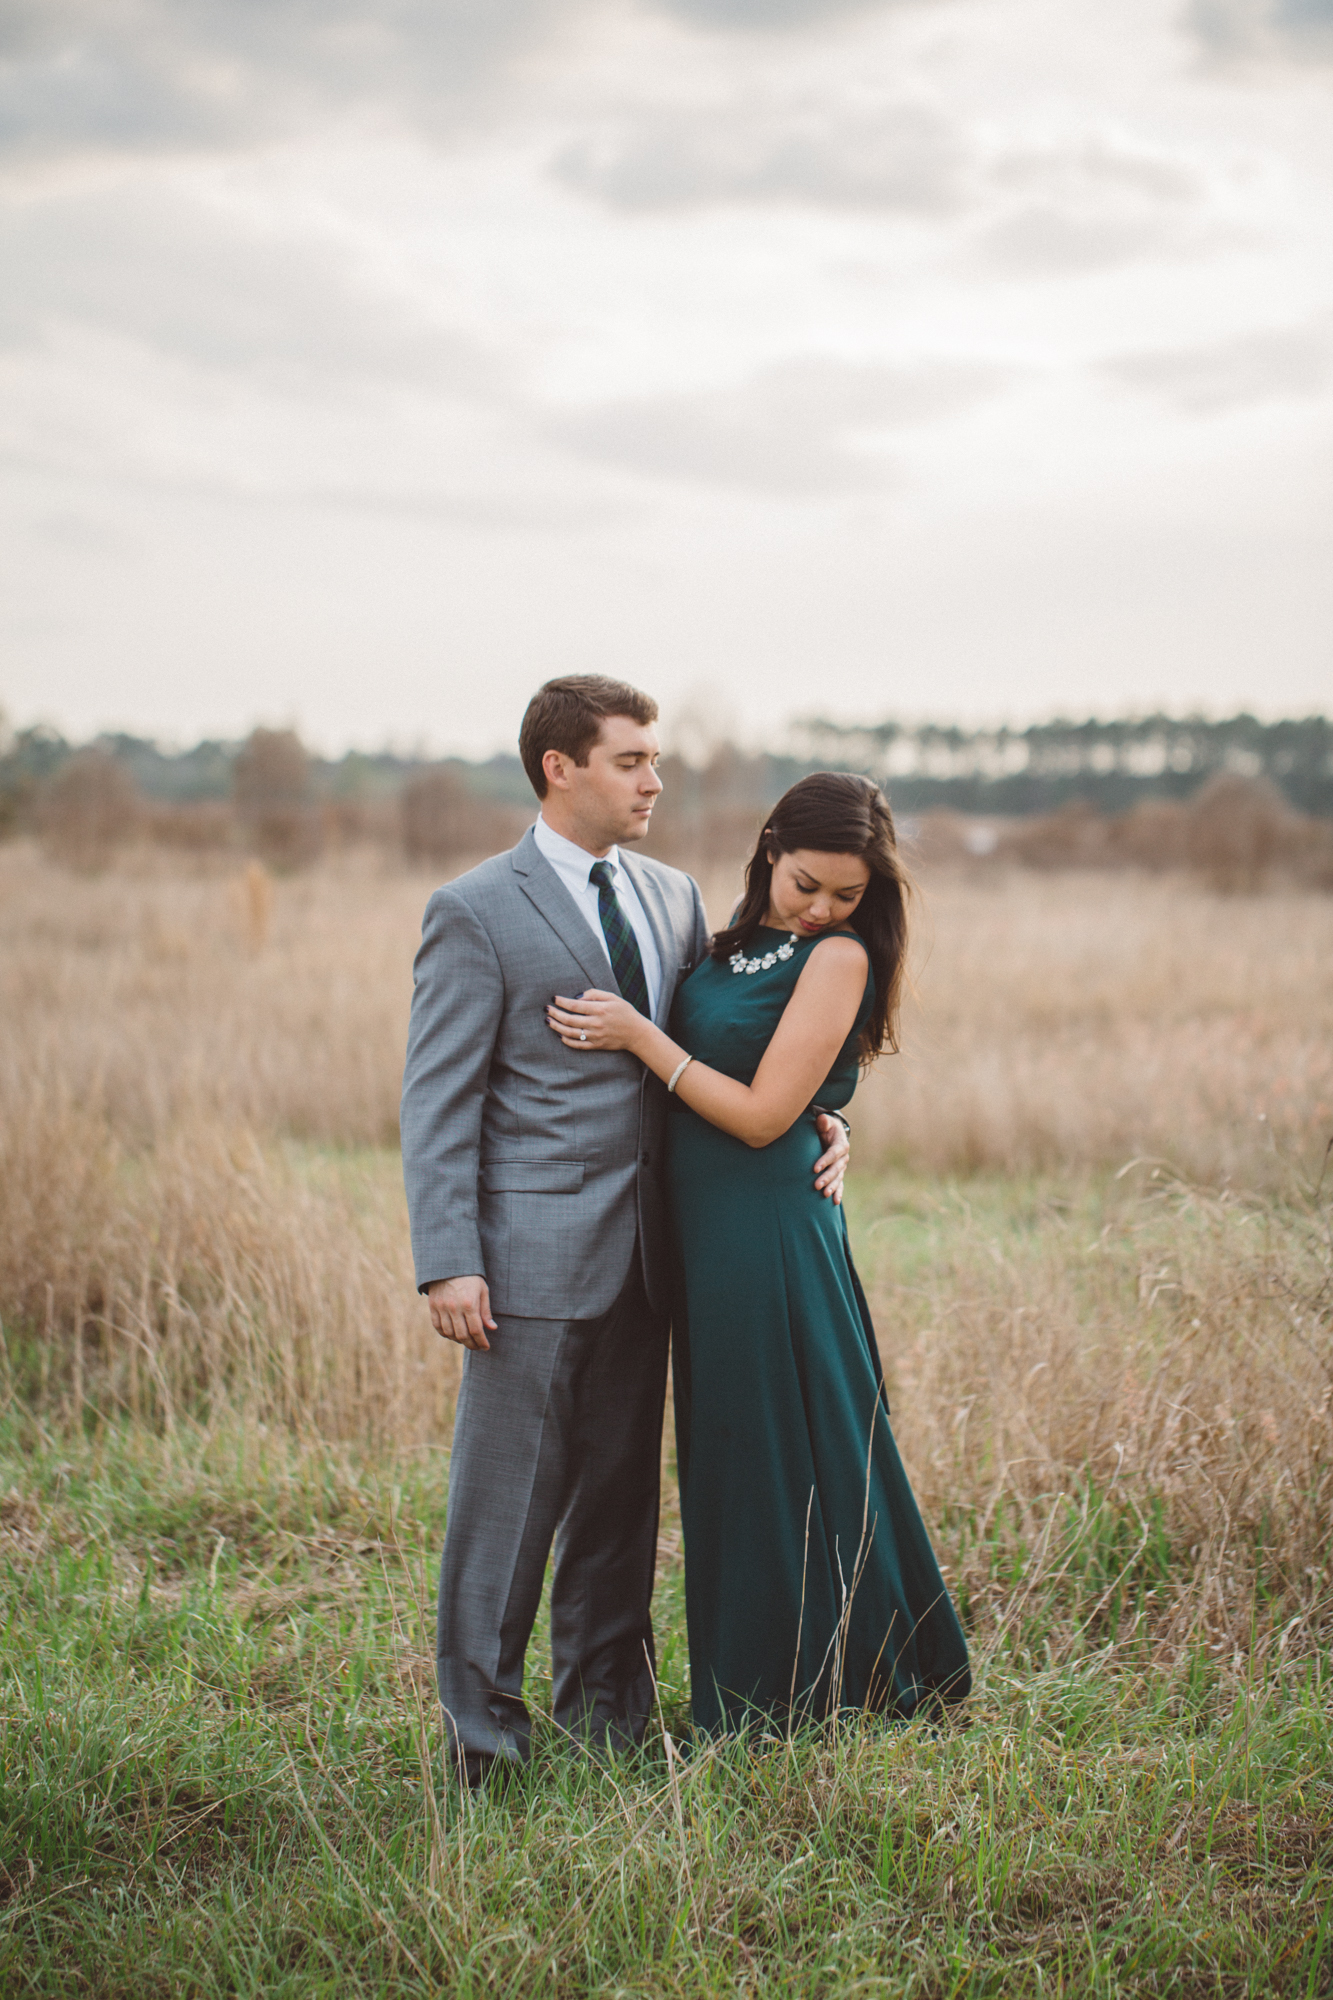 Orlando Engagement Photographer-32.jpg